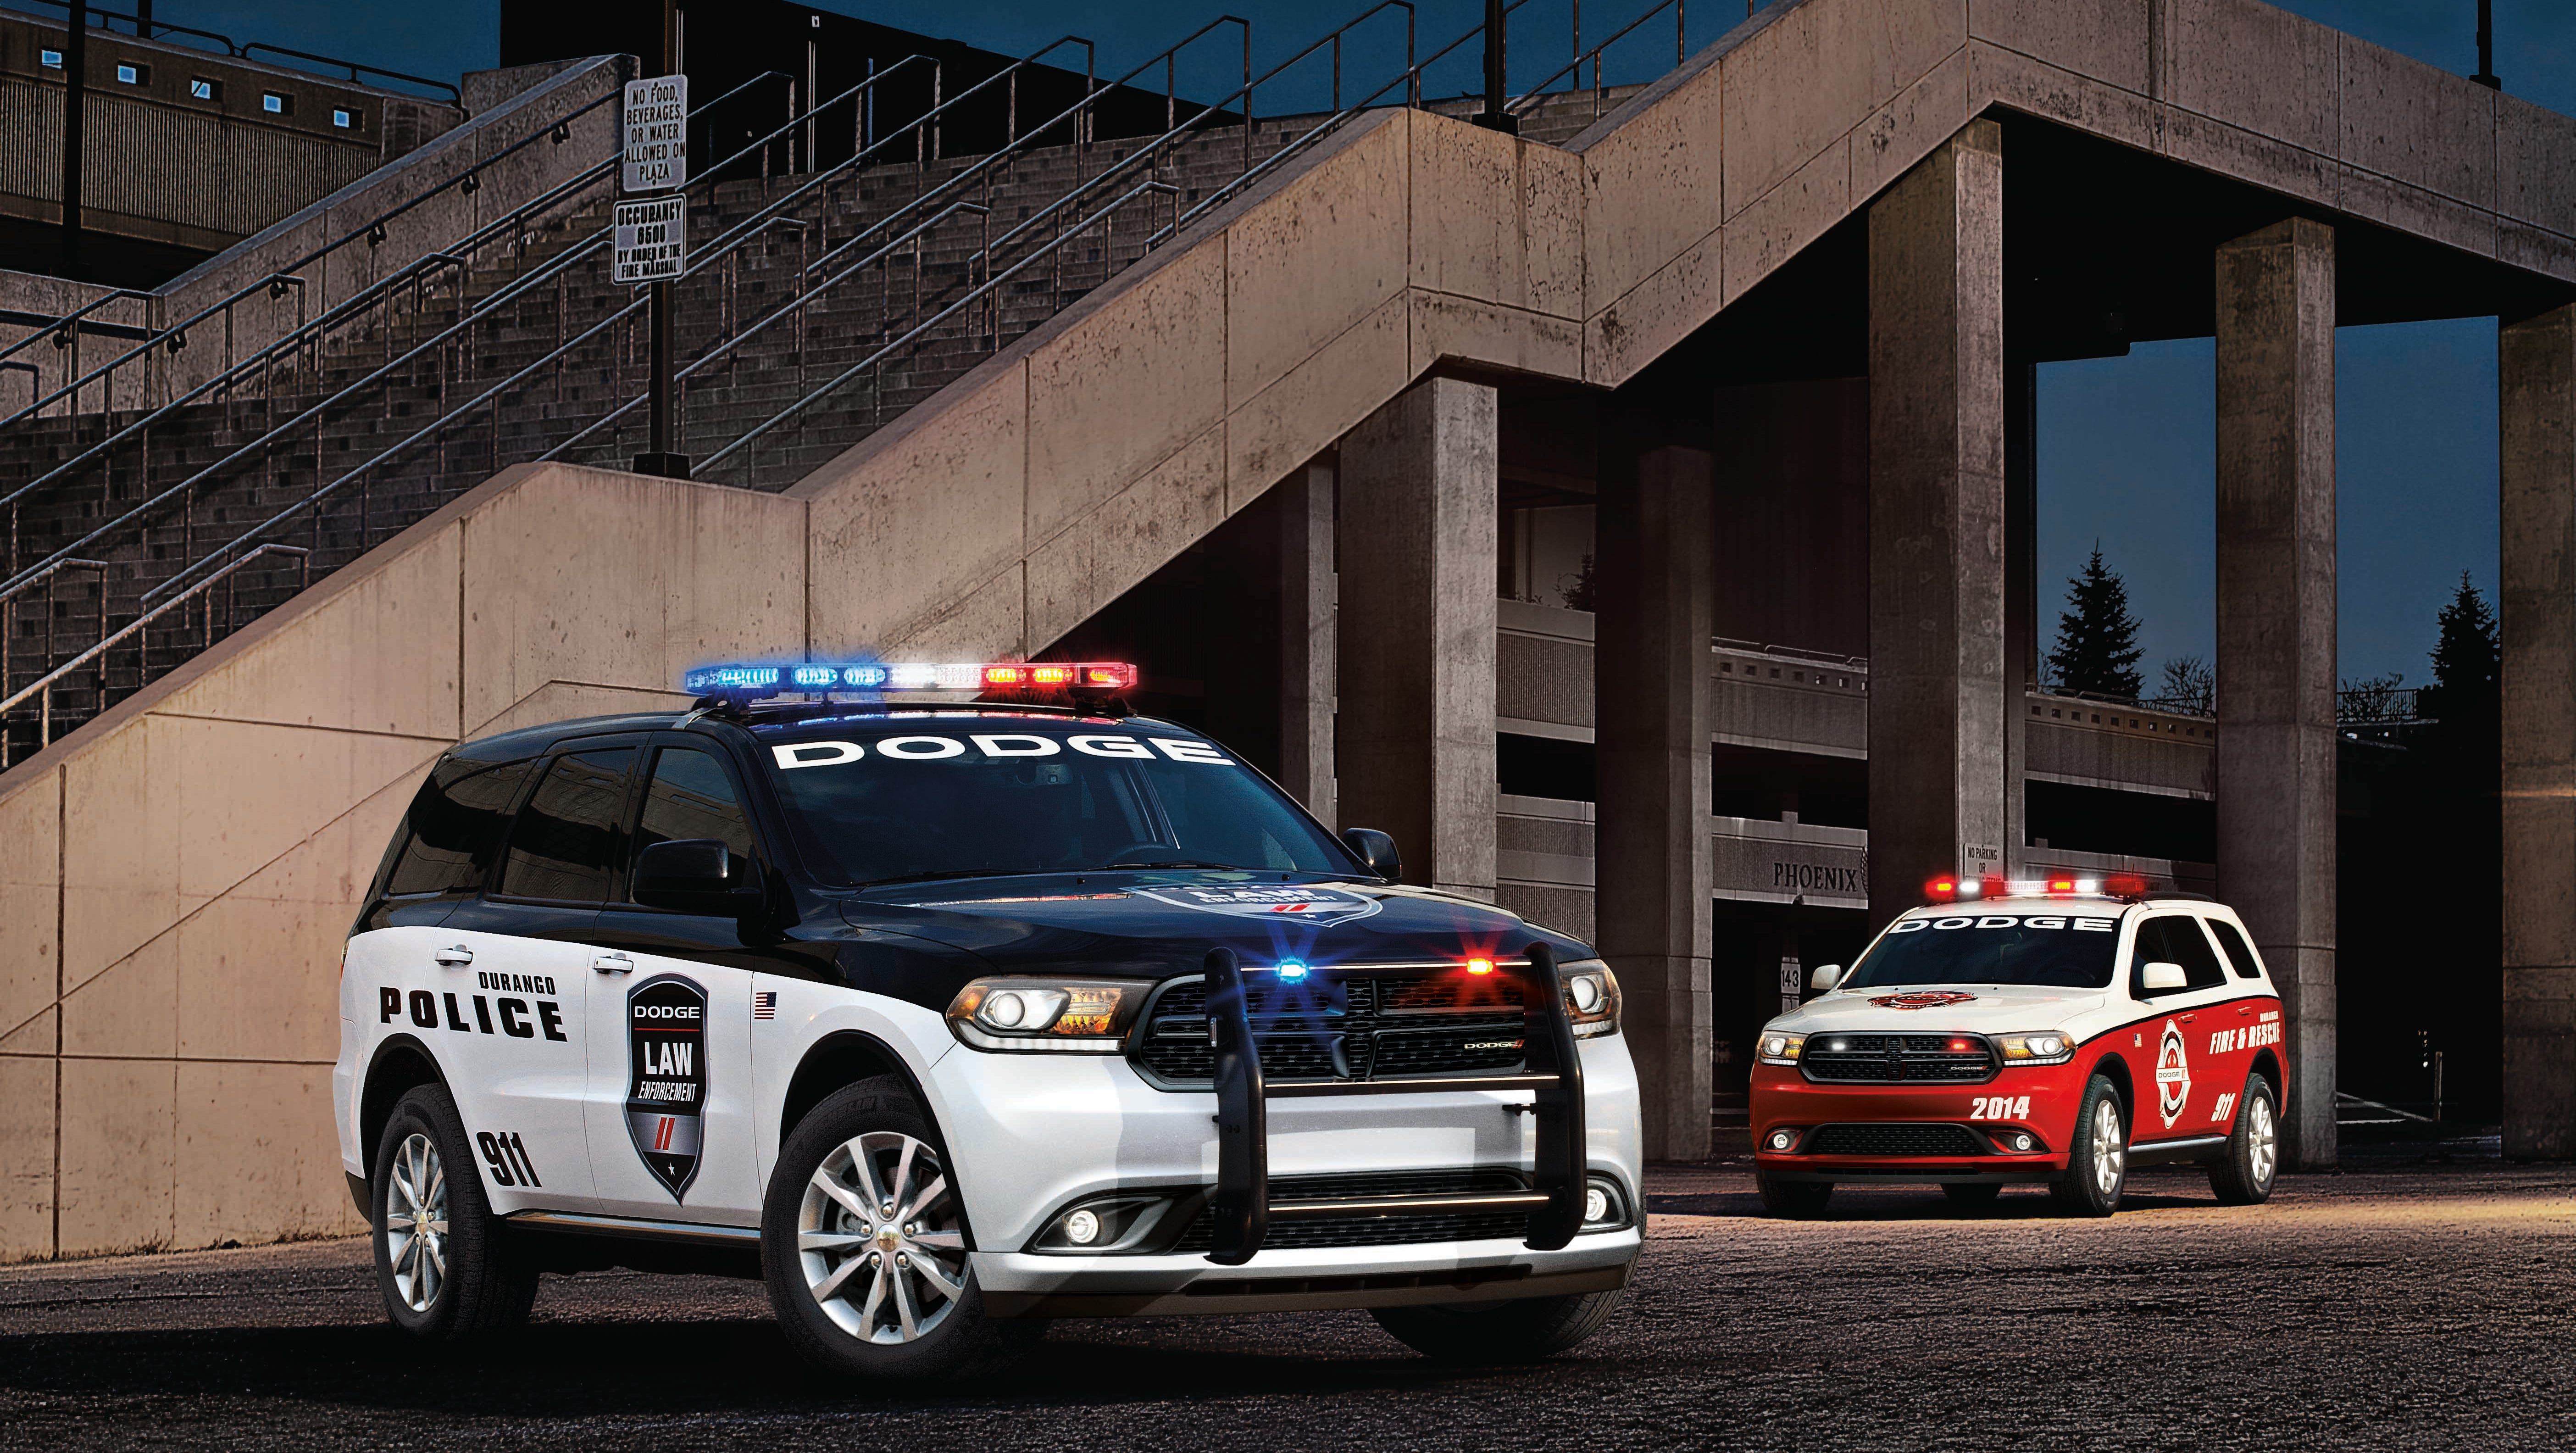 Dodge Offers 2014 Durango For Police Fire Use